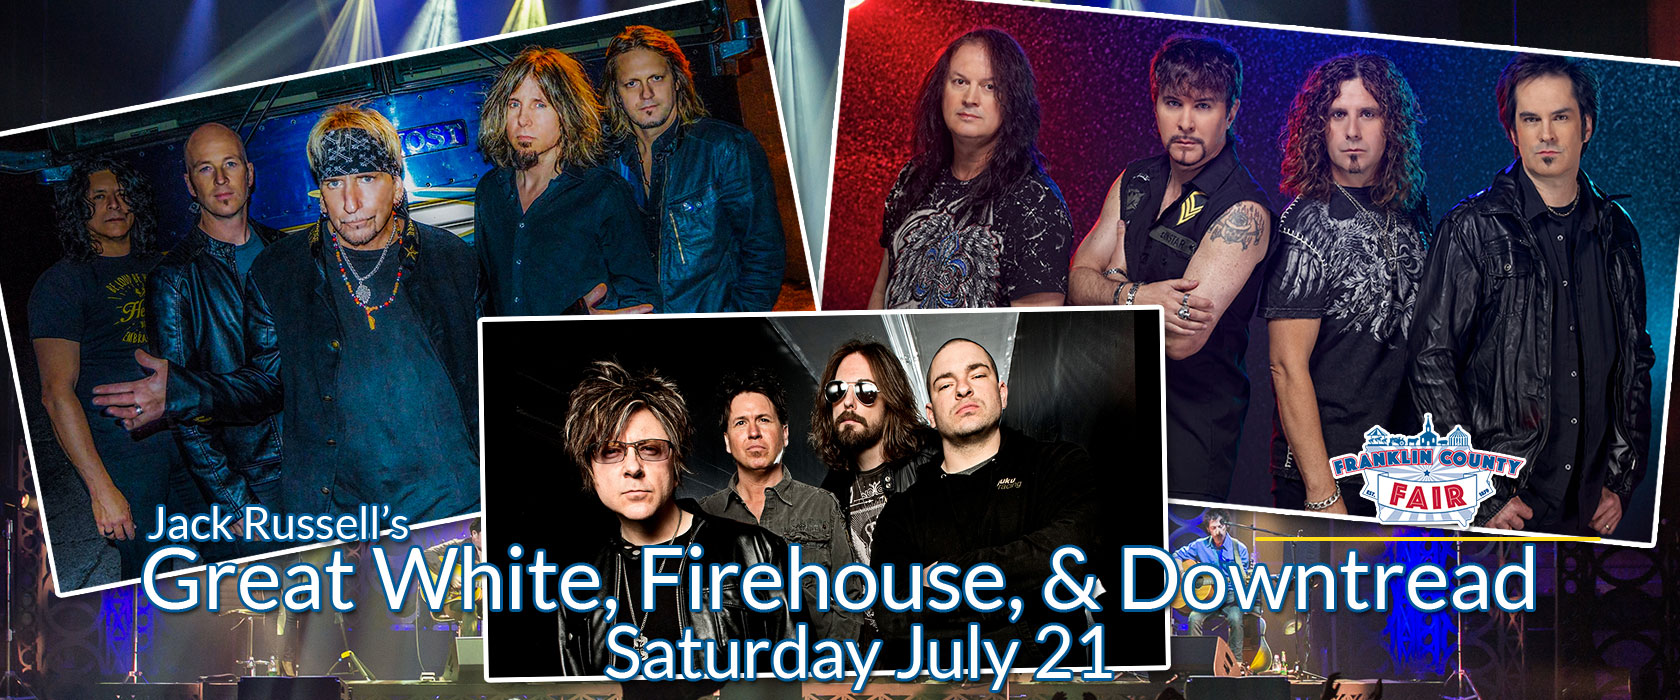 Great White and Firehouse Slide Image